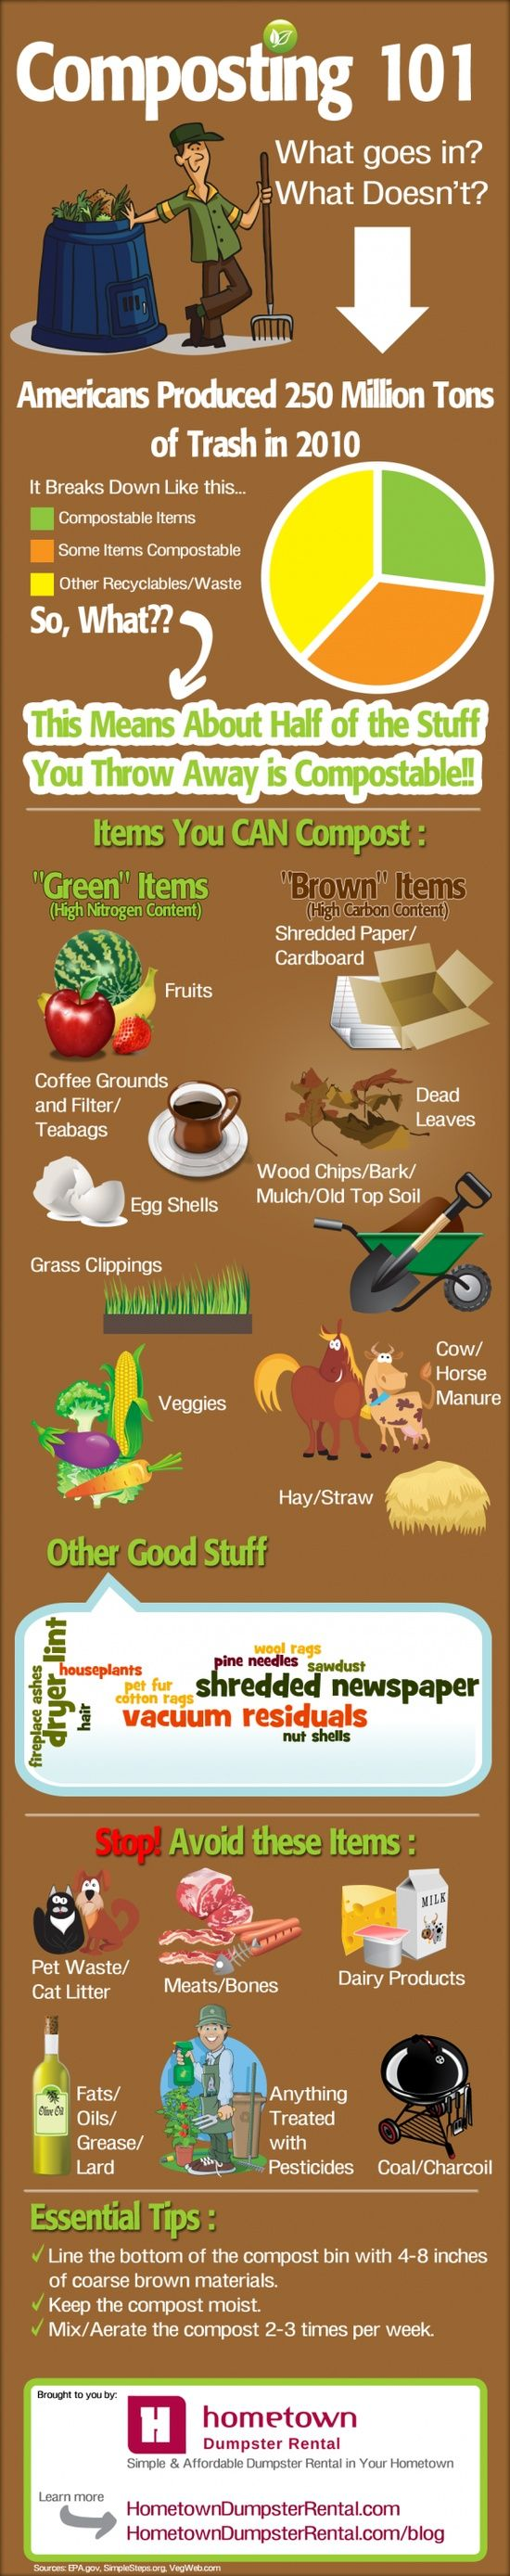 'We often throw things away, not even realizing they are compost candidates - this is a helpful infographic to help with the sorting process.'